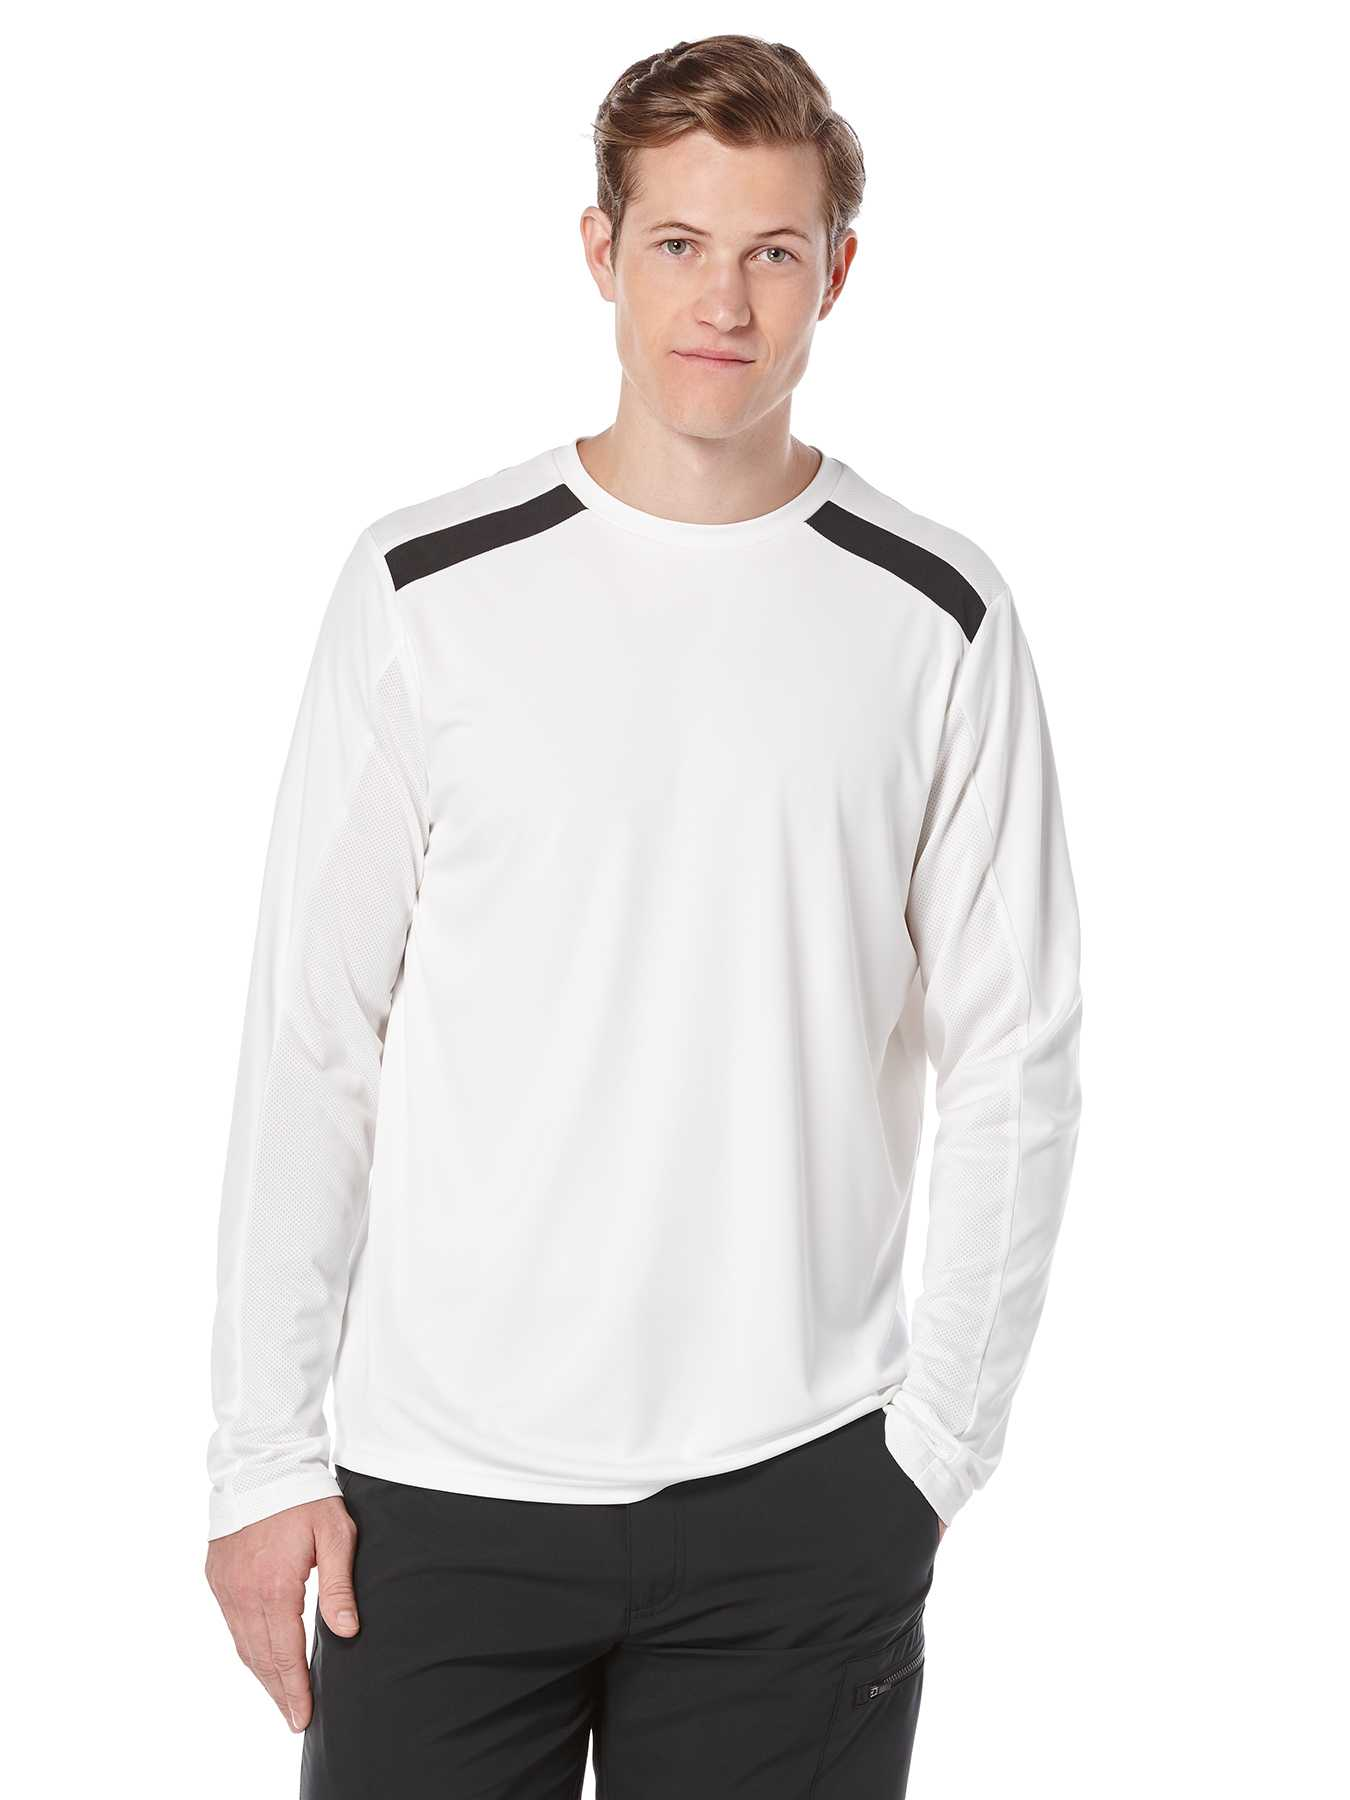 Perry Ellis Long Sleeve Solid Colorblock Shirt